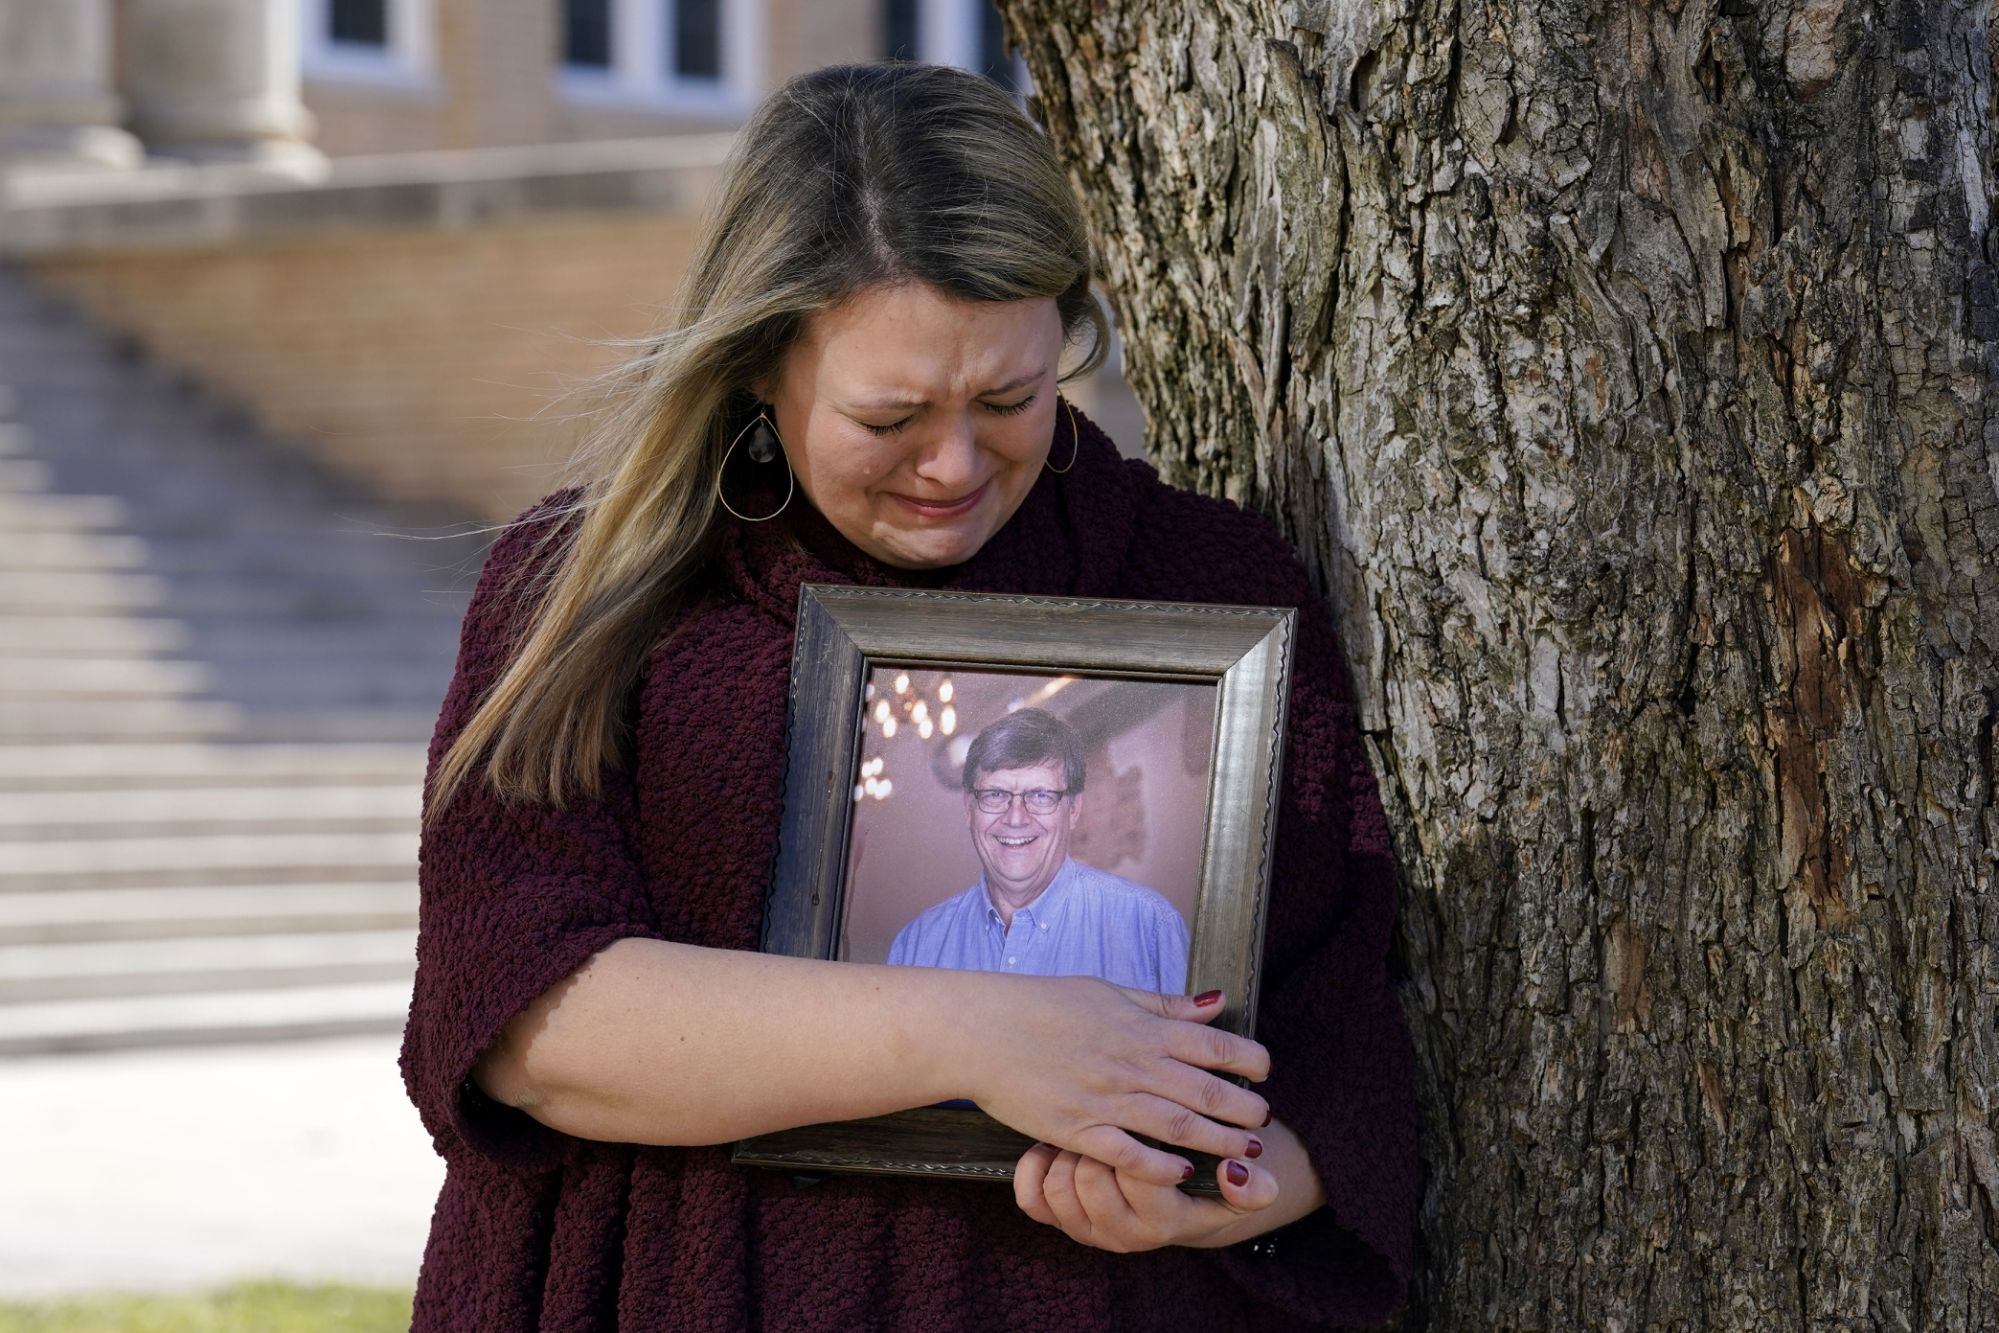 Virus rules not enforced. Grieving Texas family asks: Why?